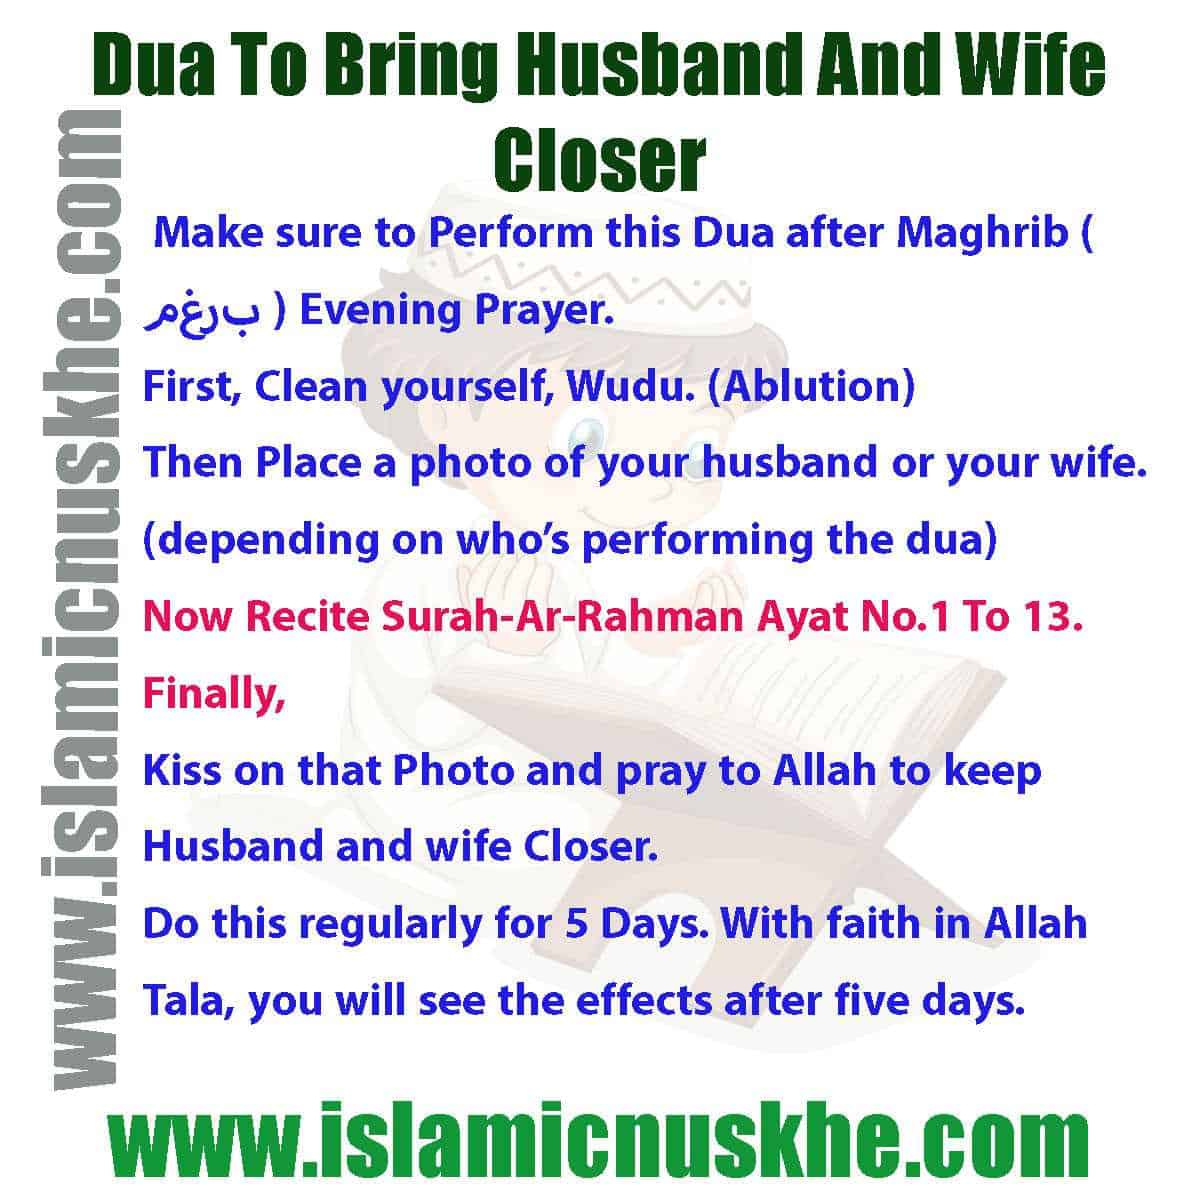 Here is Dua To Bring Husband And Wife Closer Step by Step